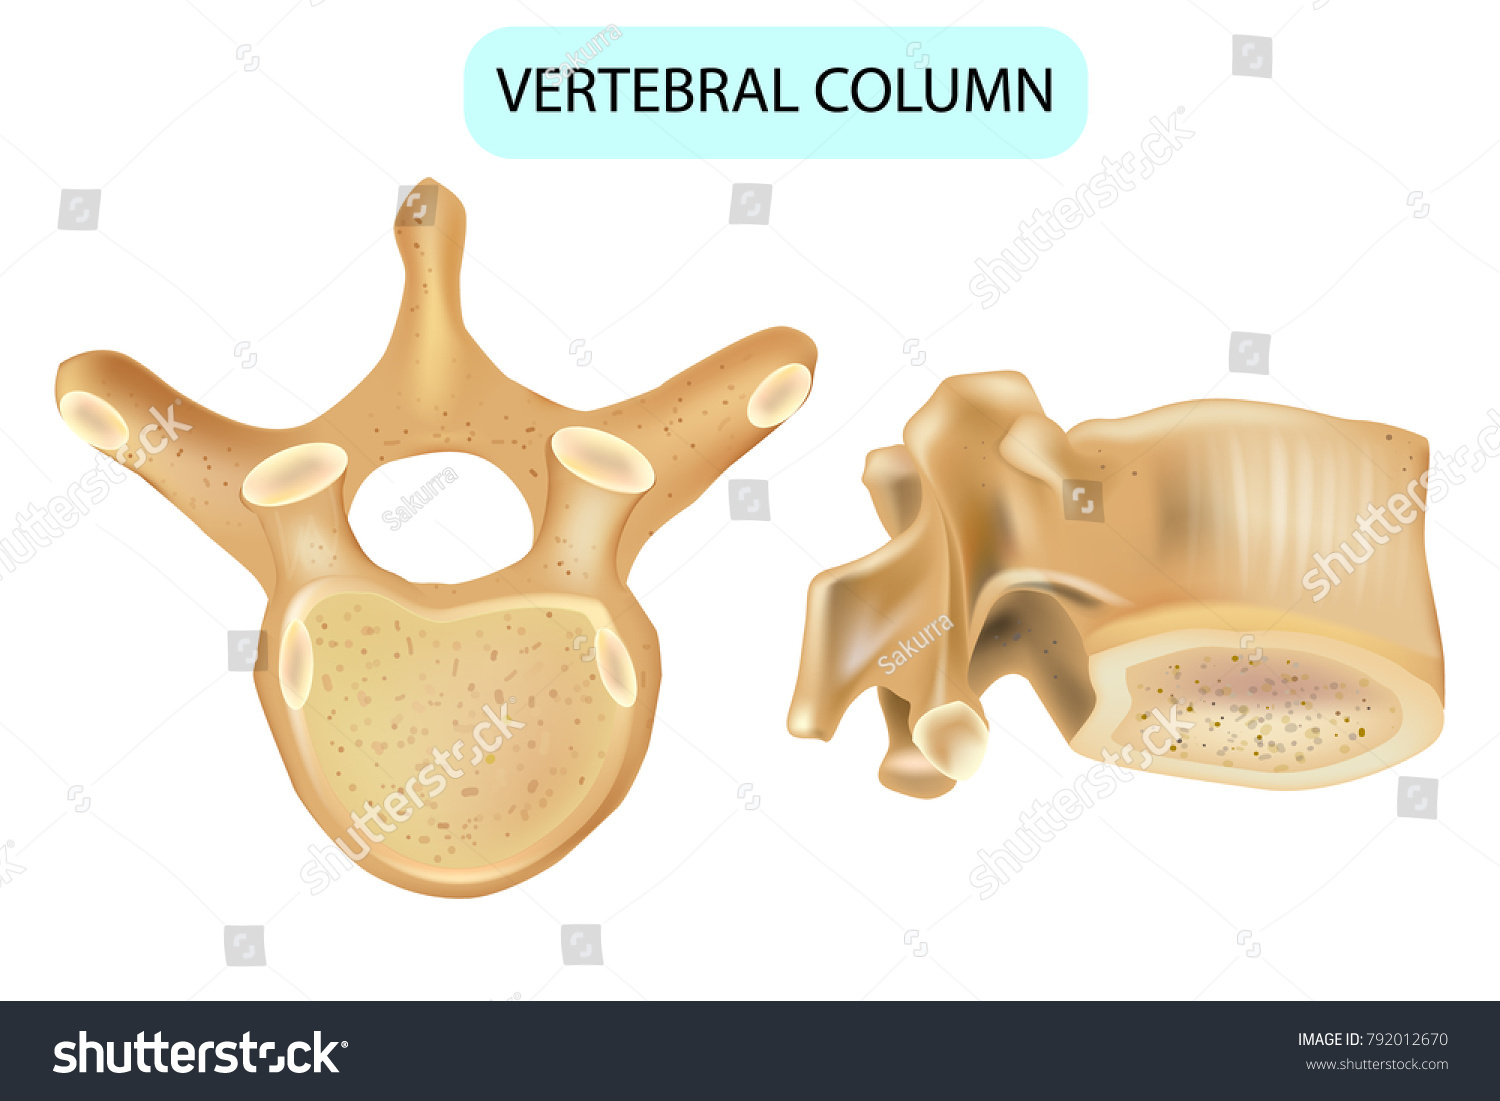 Anatomy Vertebra Vertebral Column Human Spine Stock Vector Royalty